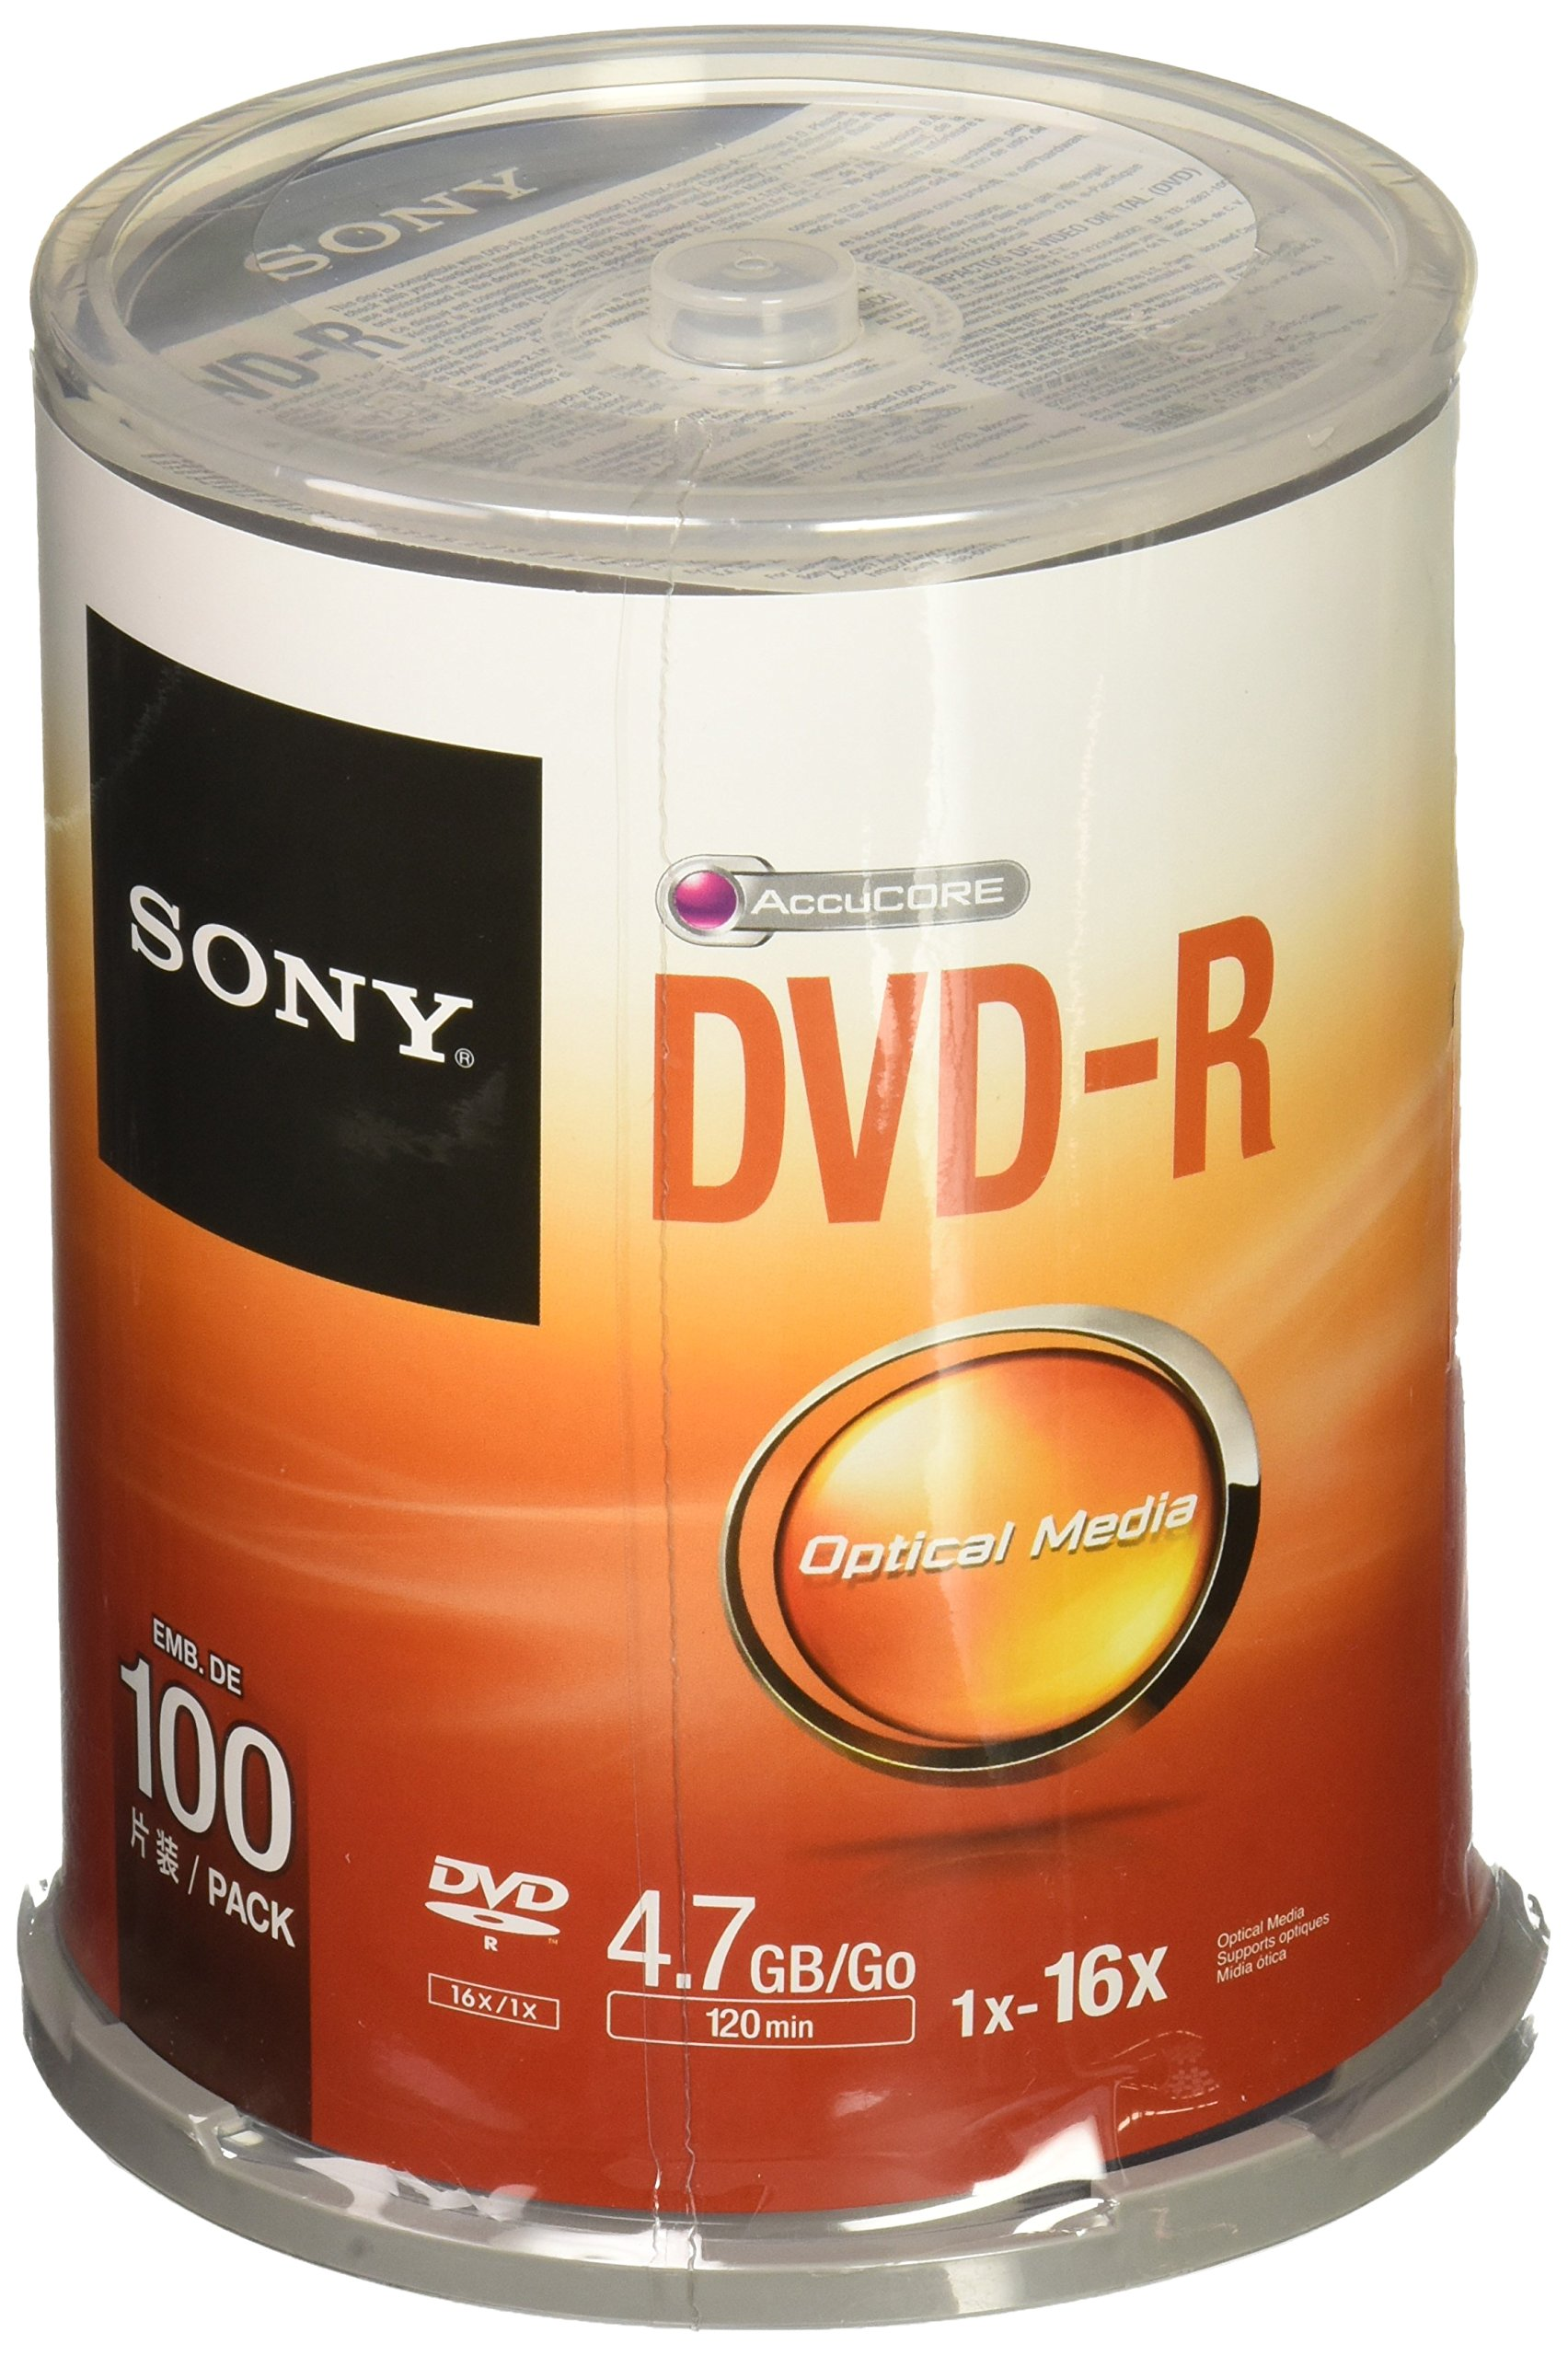 Sony DVD-R 16x Recordable DVD 4.7GB - 100 Disc Spindle (Discontinued by Manufacturer) by Sony